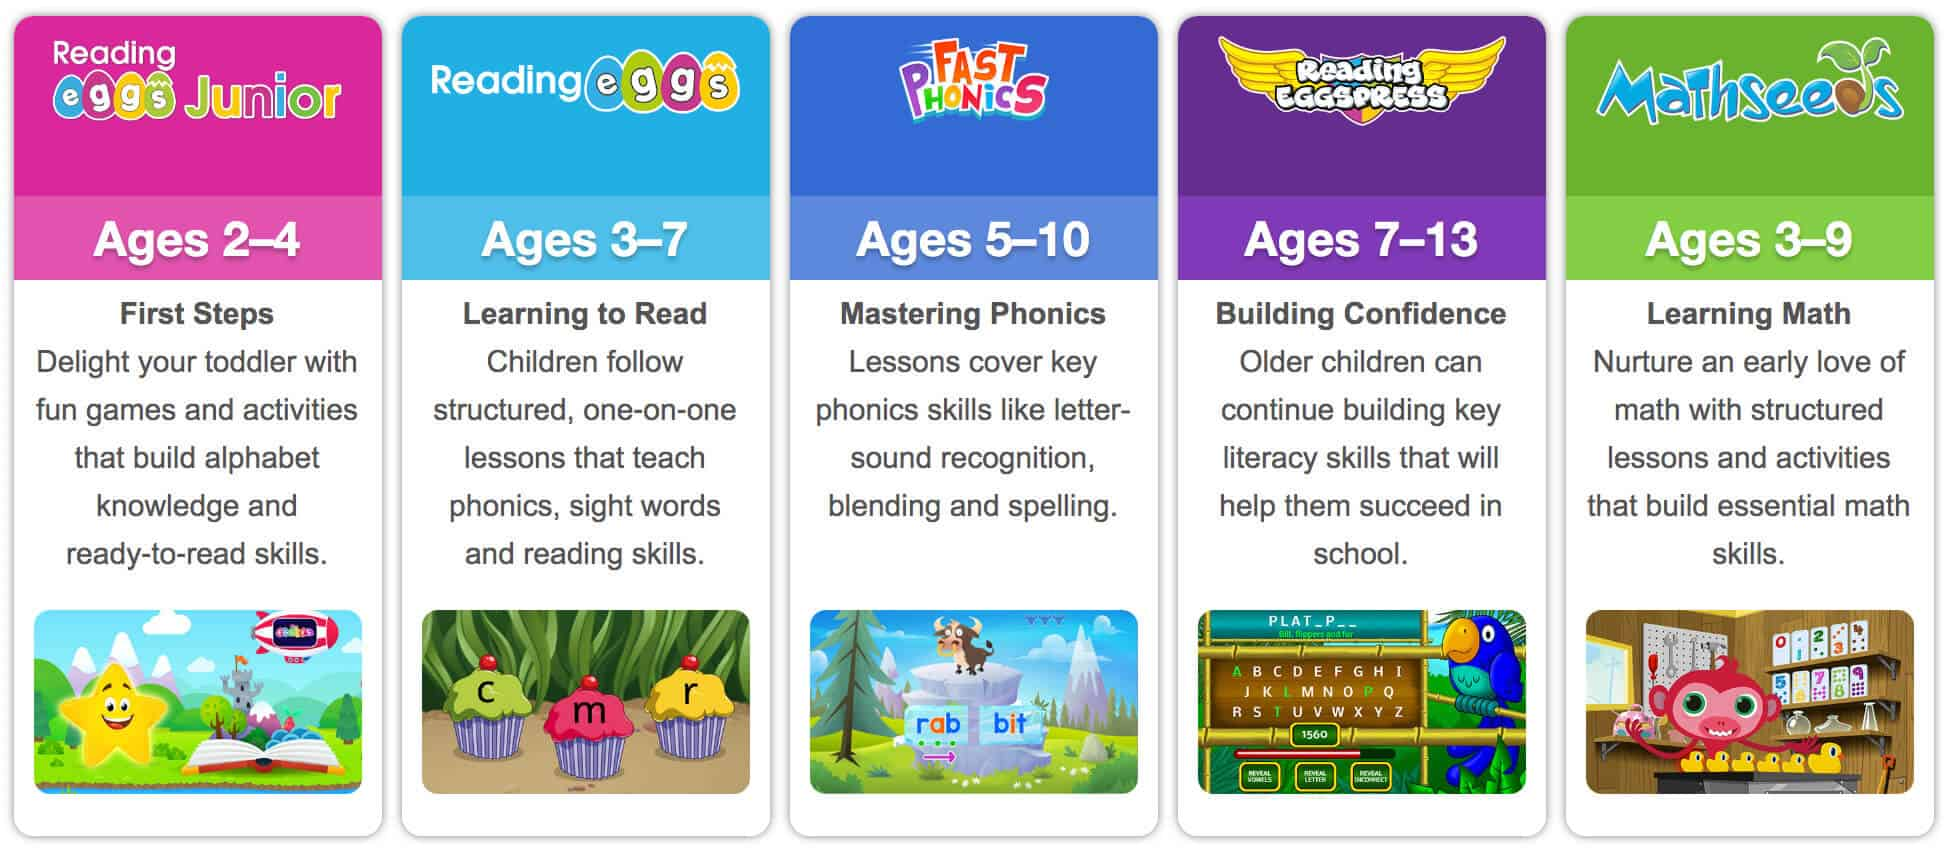 Collection of Reading Eggs Educational Apps for Kids